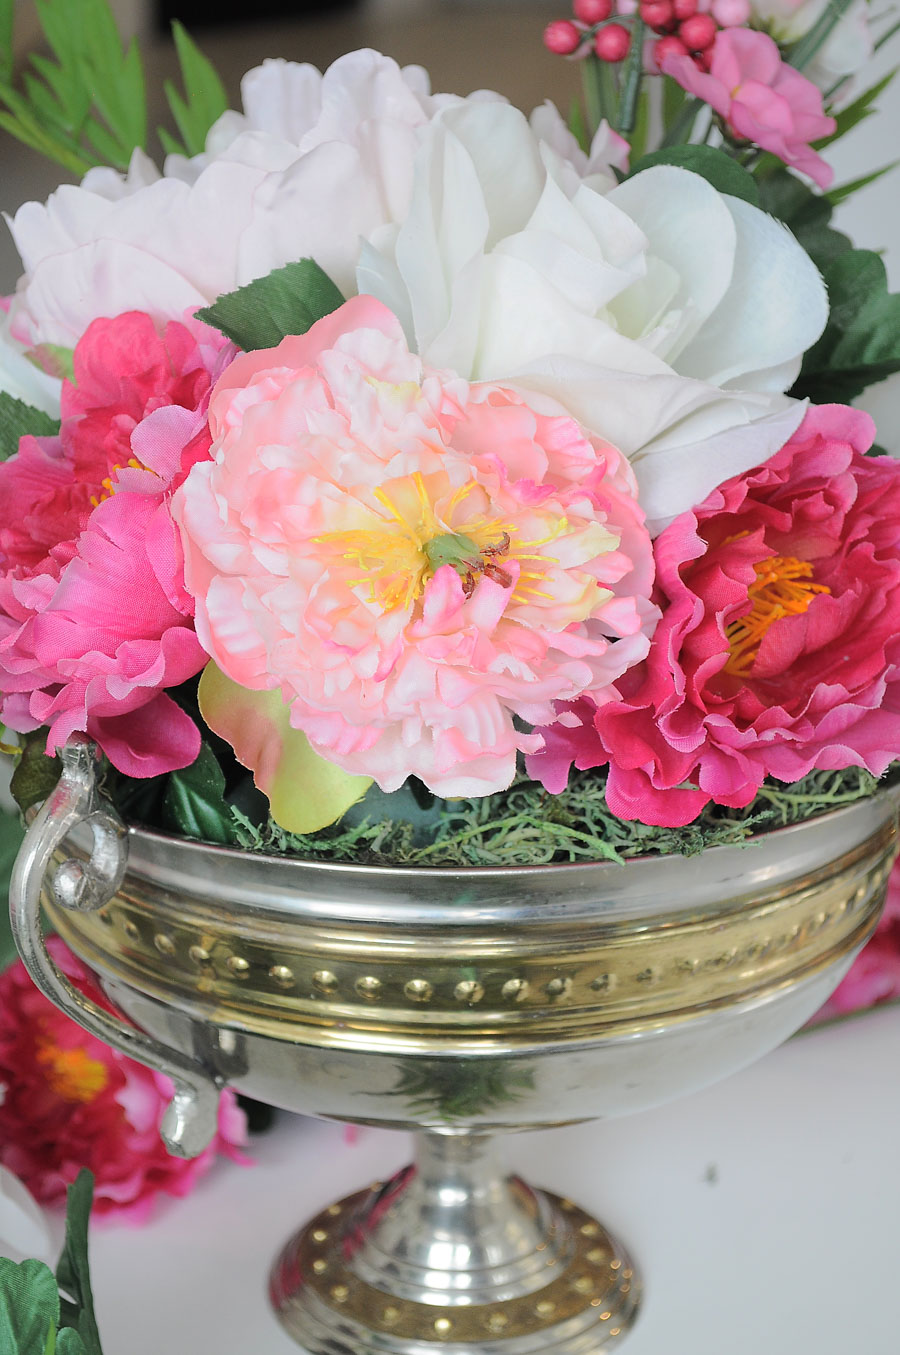 How to DIY a silk or faux floral centerpiece for under $20. Love the colors and florals used- perfect for spring and summer home decor.